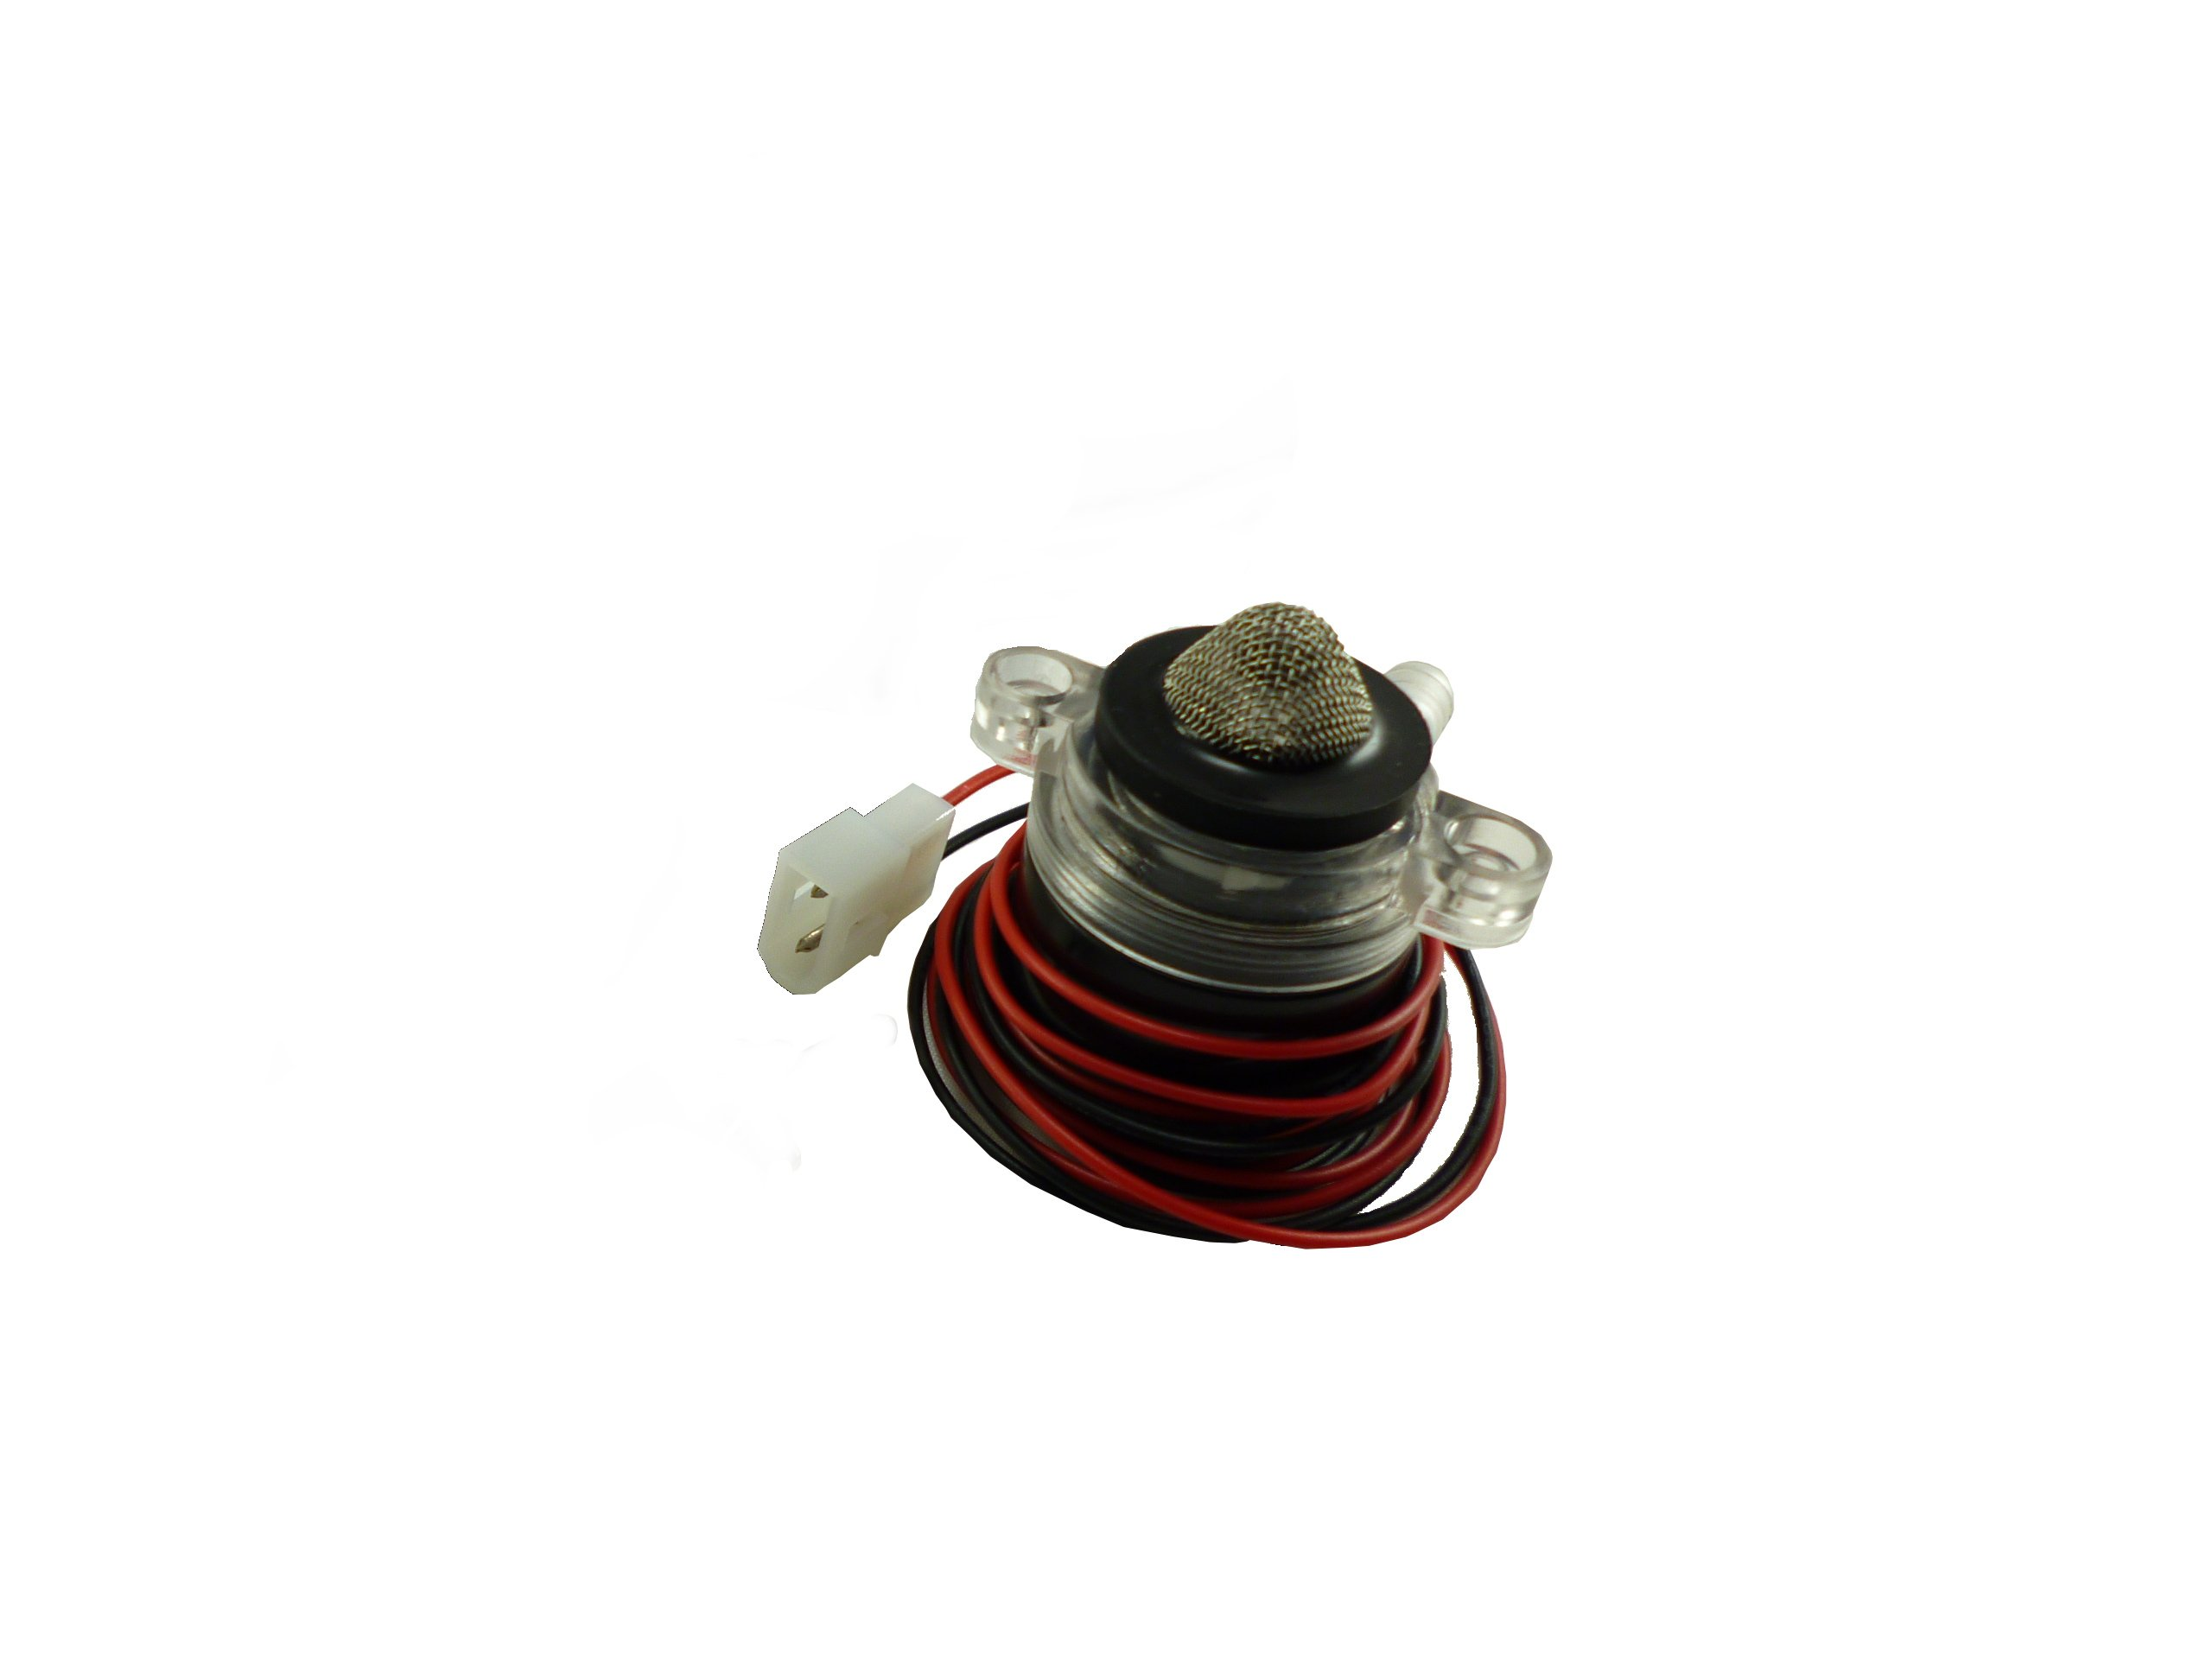 Simply Pumps DM212 Centrifugal Mini Water Pump, Submersible Micro Brushless, 12V DC, 37 GPH